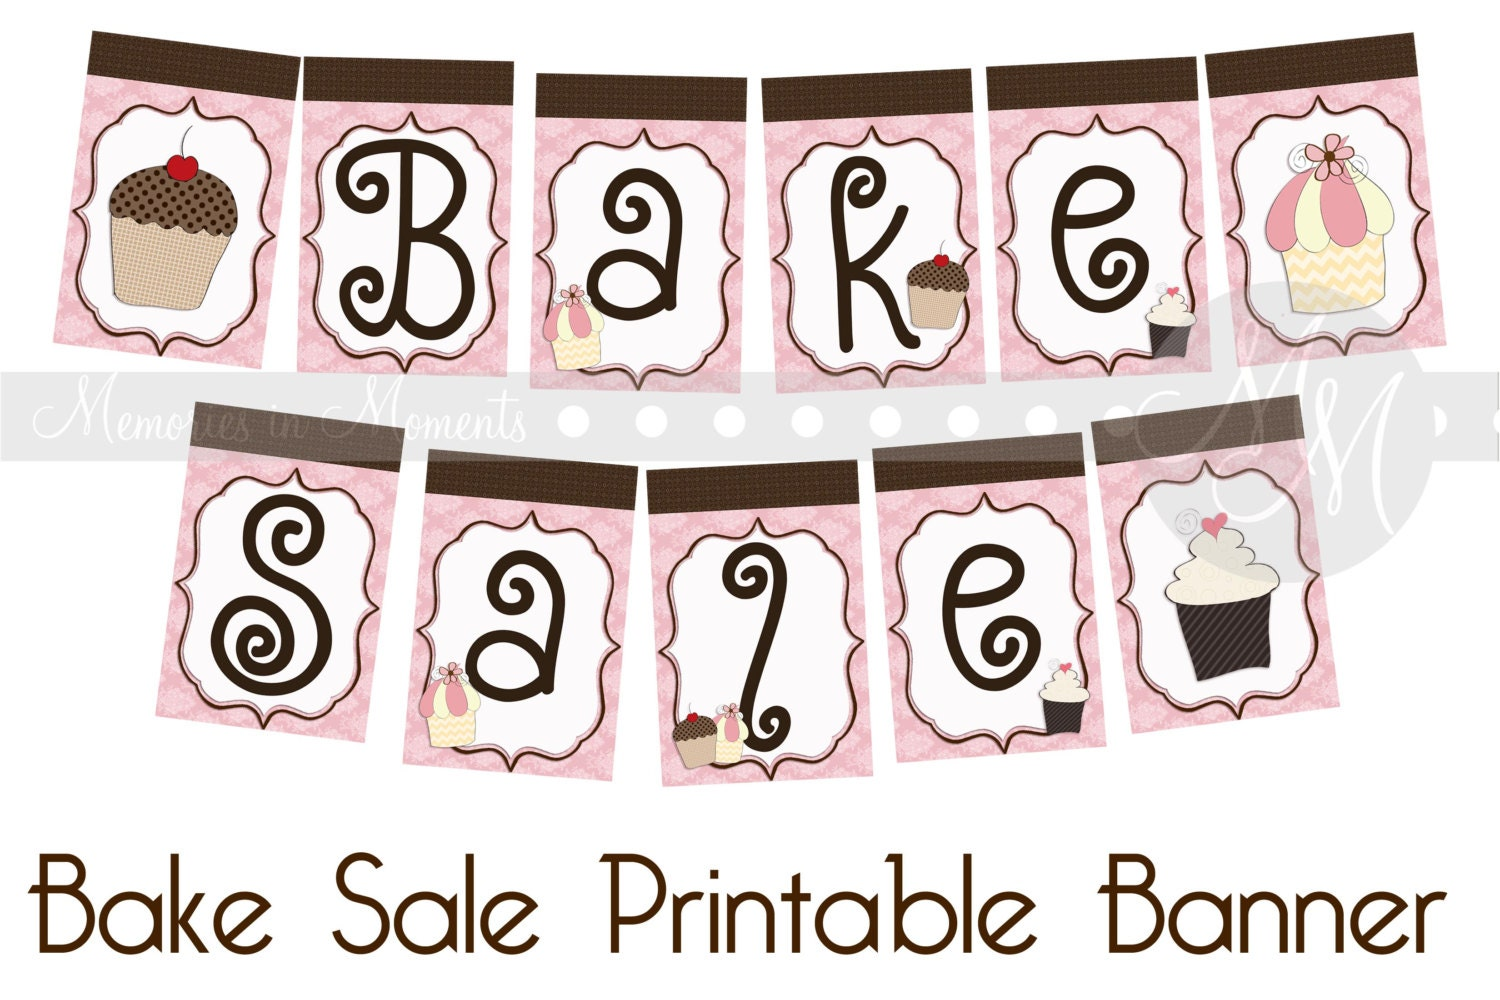 Printable Bake Sale Sign Bake sale printable banner by